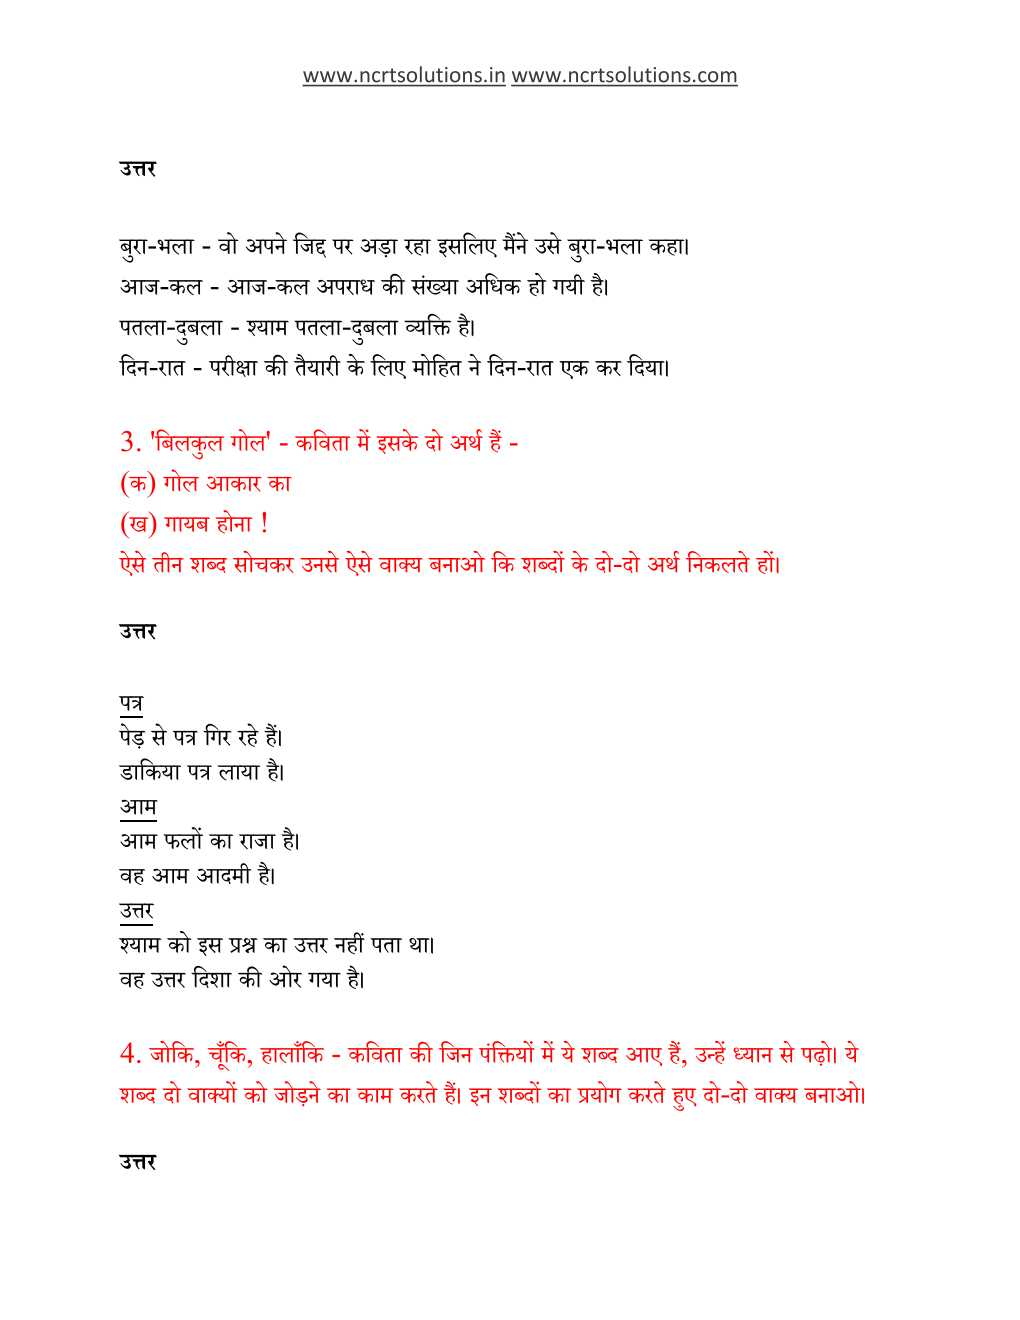 NCERT Solutions For Class 6 Hindi Vasant Chapter 4